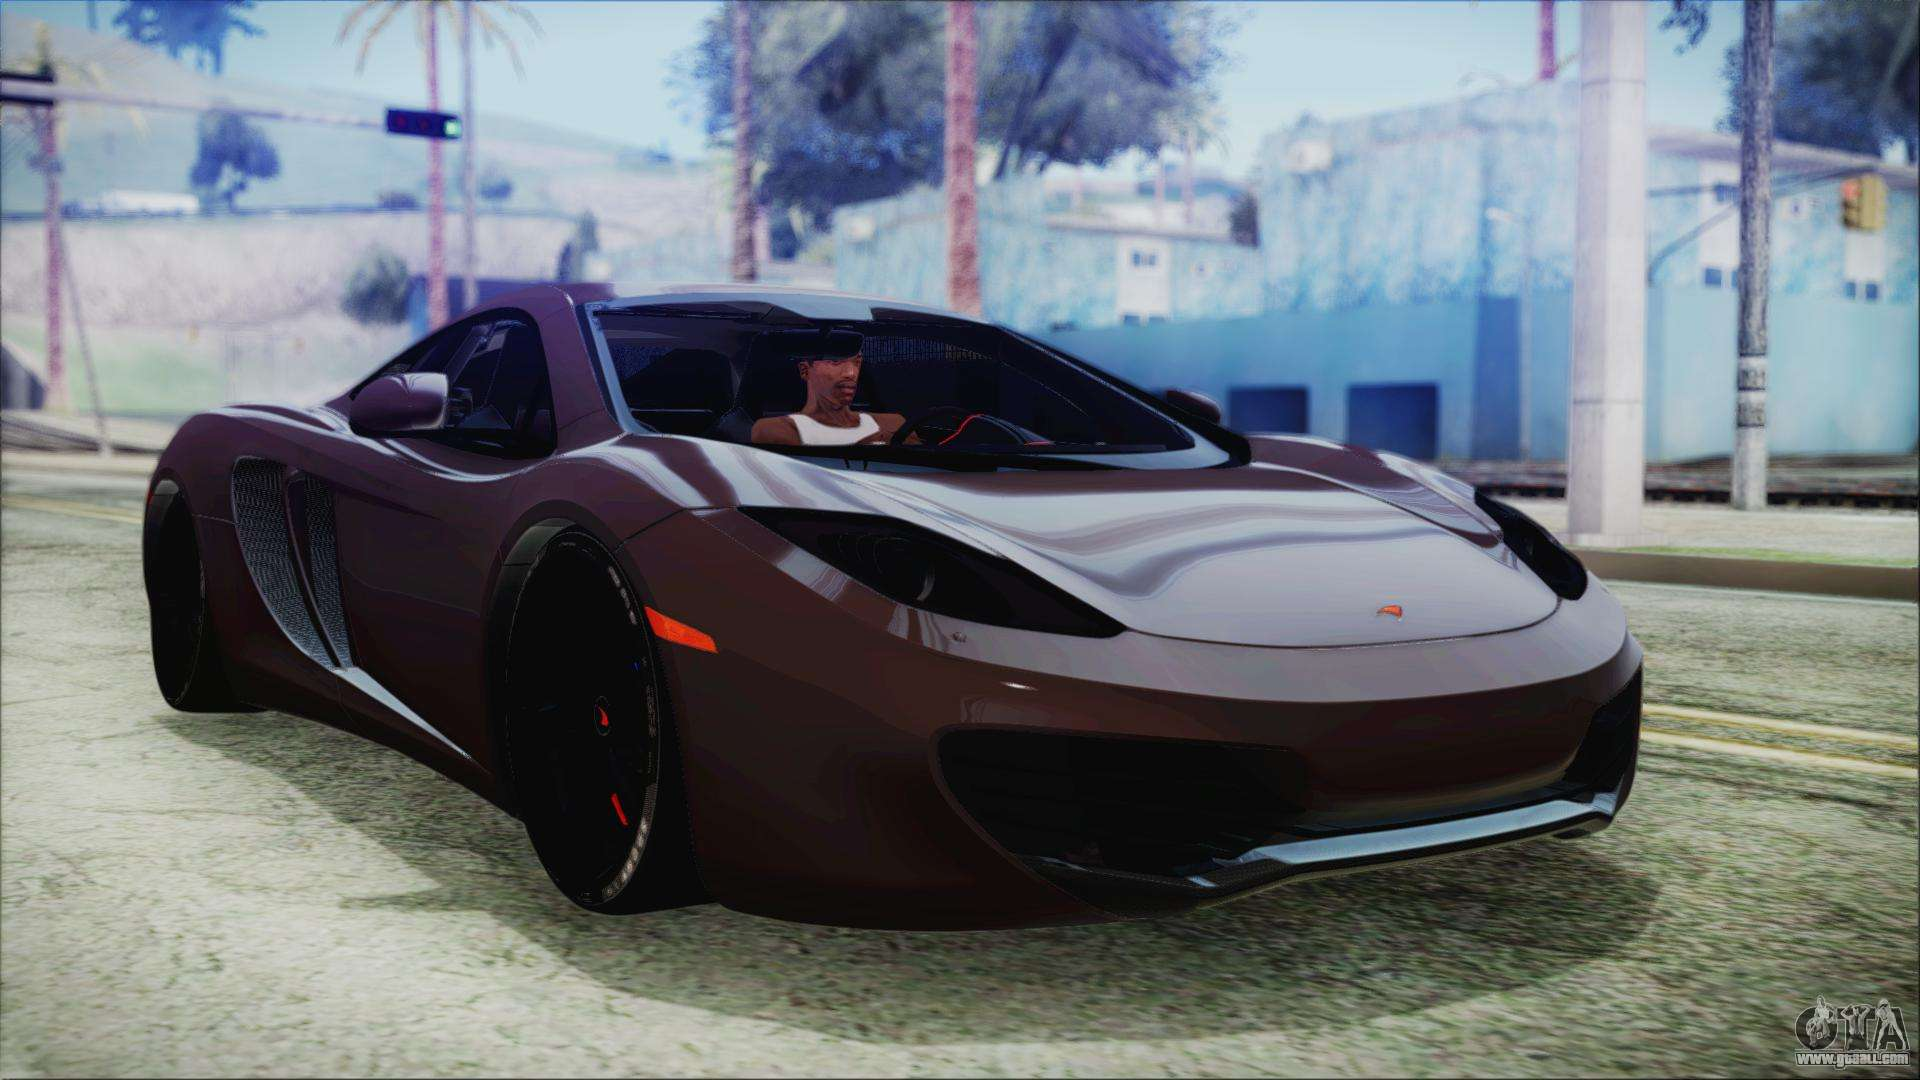 https://cs2.gtaall.com/screenshots/4dc09/2015-12/original/f077aeba097e2f5ab972f77099af2a45579c5612/311528-gta-sa-2015-12-19-17-13-38-57.jpg